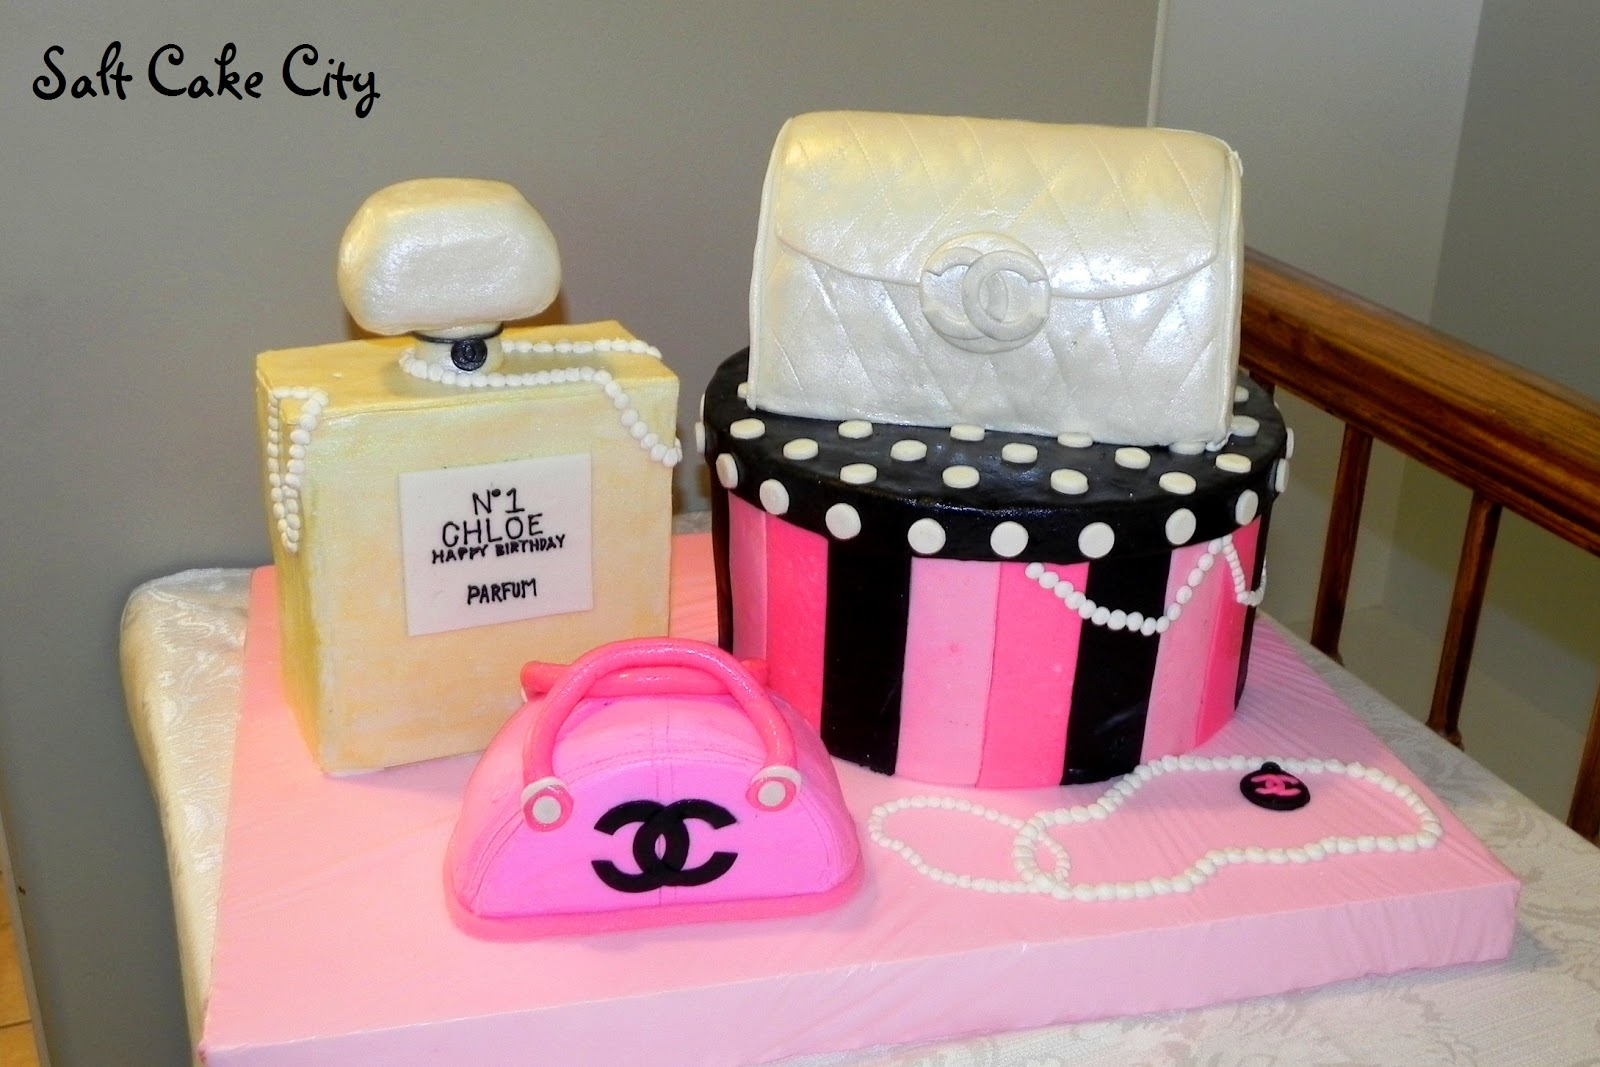 Salt Cake City Chanel No 1 In Cake Form